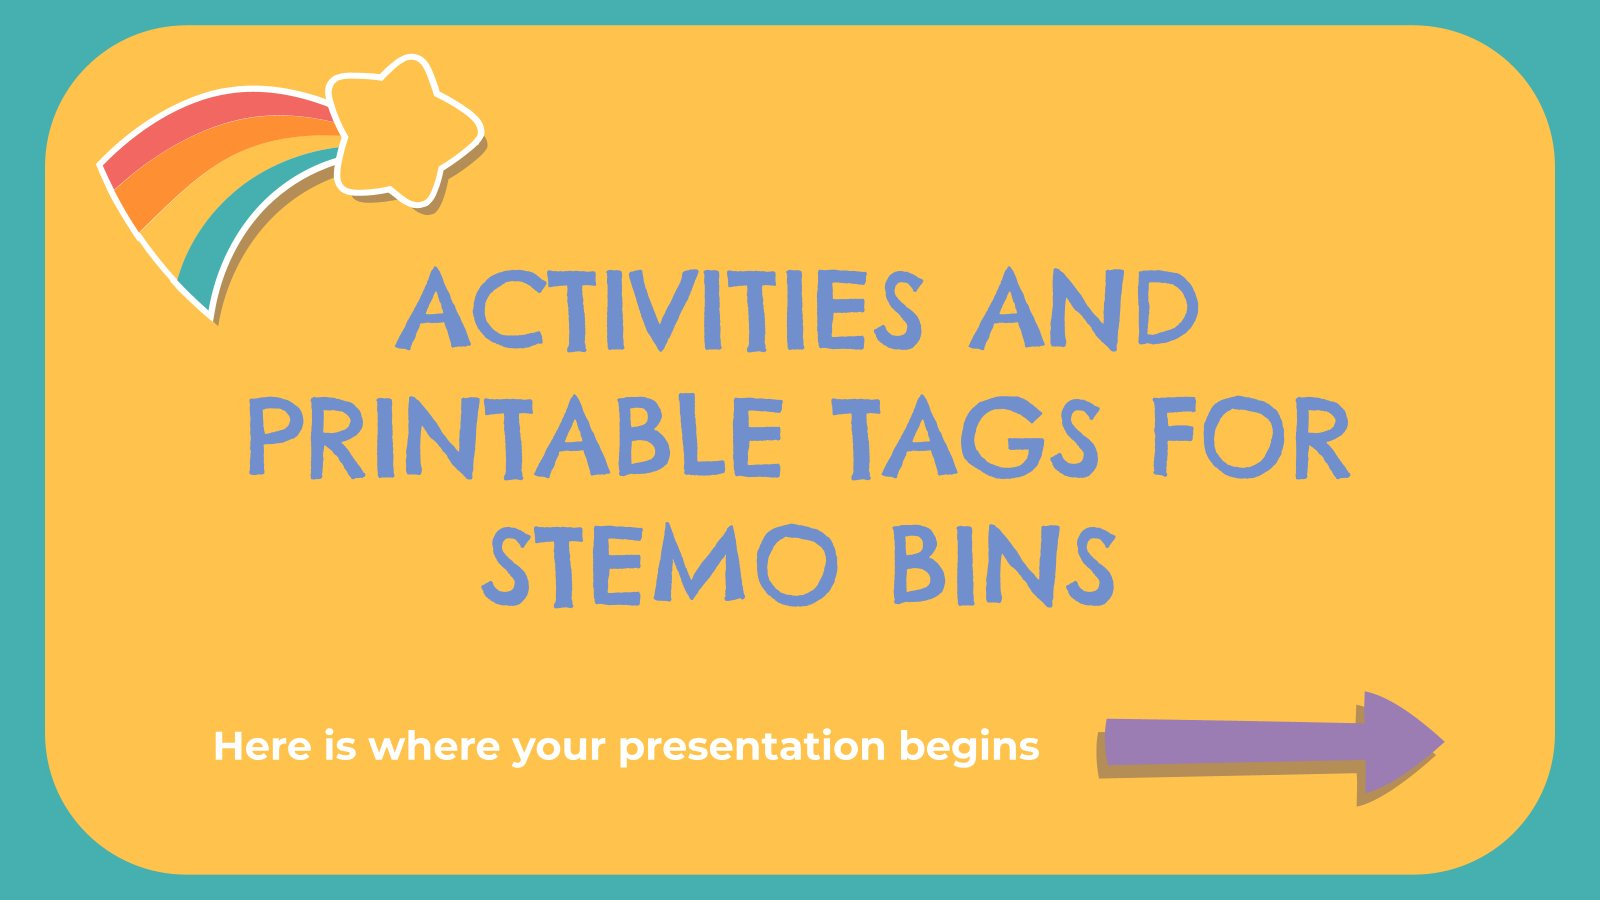 Activities and Printable Tags for STEMO Bins presentation template